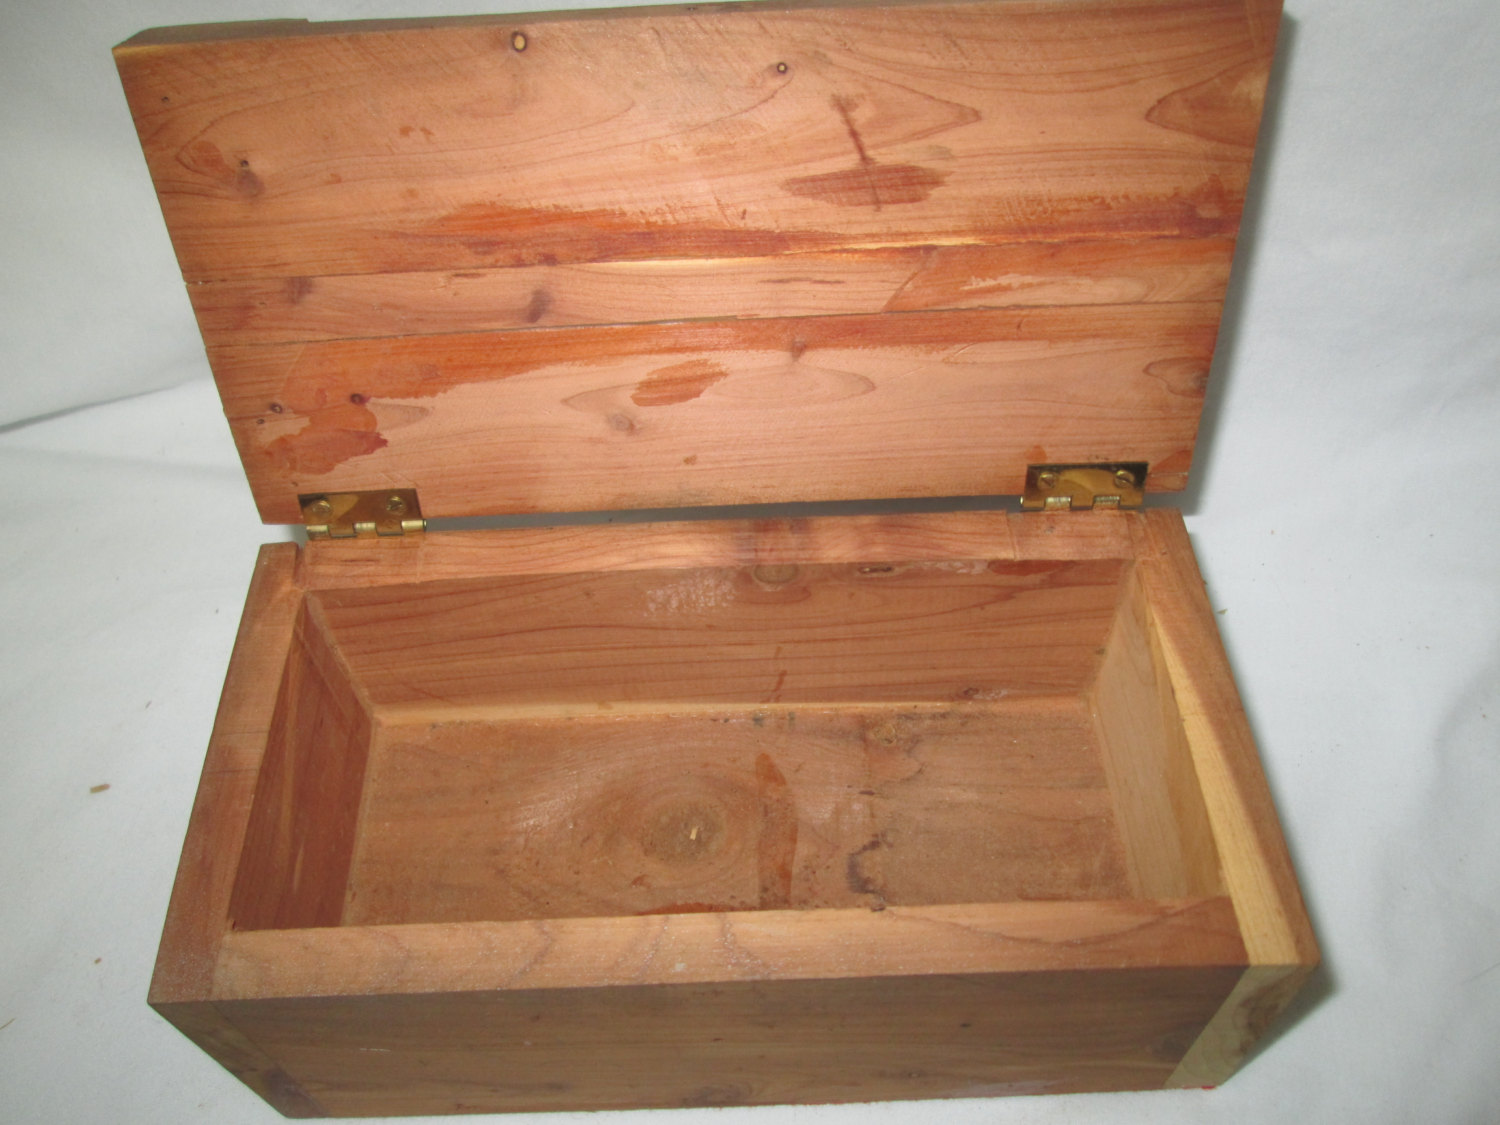 Vintage Wooden Cedar Wood box hand crafted hinged lid storage box